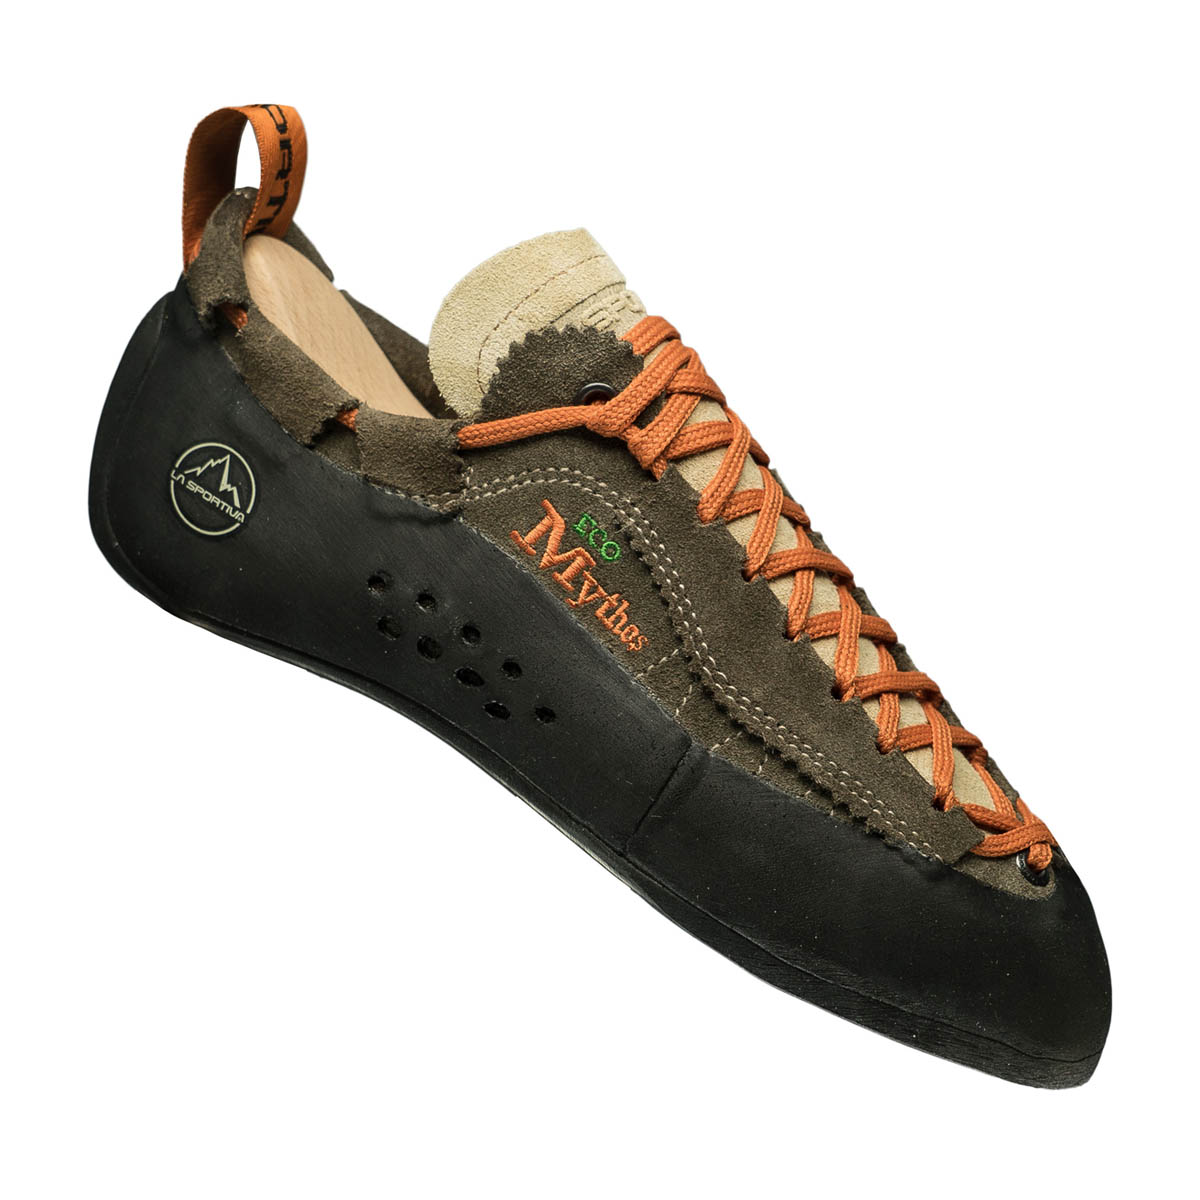 la sportiva mythos eco climbing shoes epictv shop. Black Bedroom Furniture Sets. Home Design Ideas